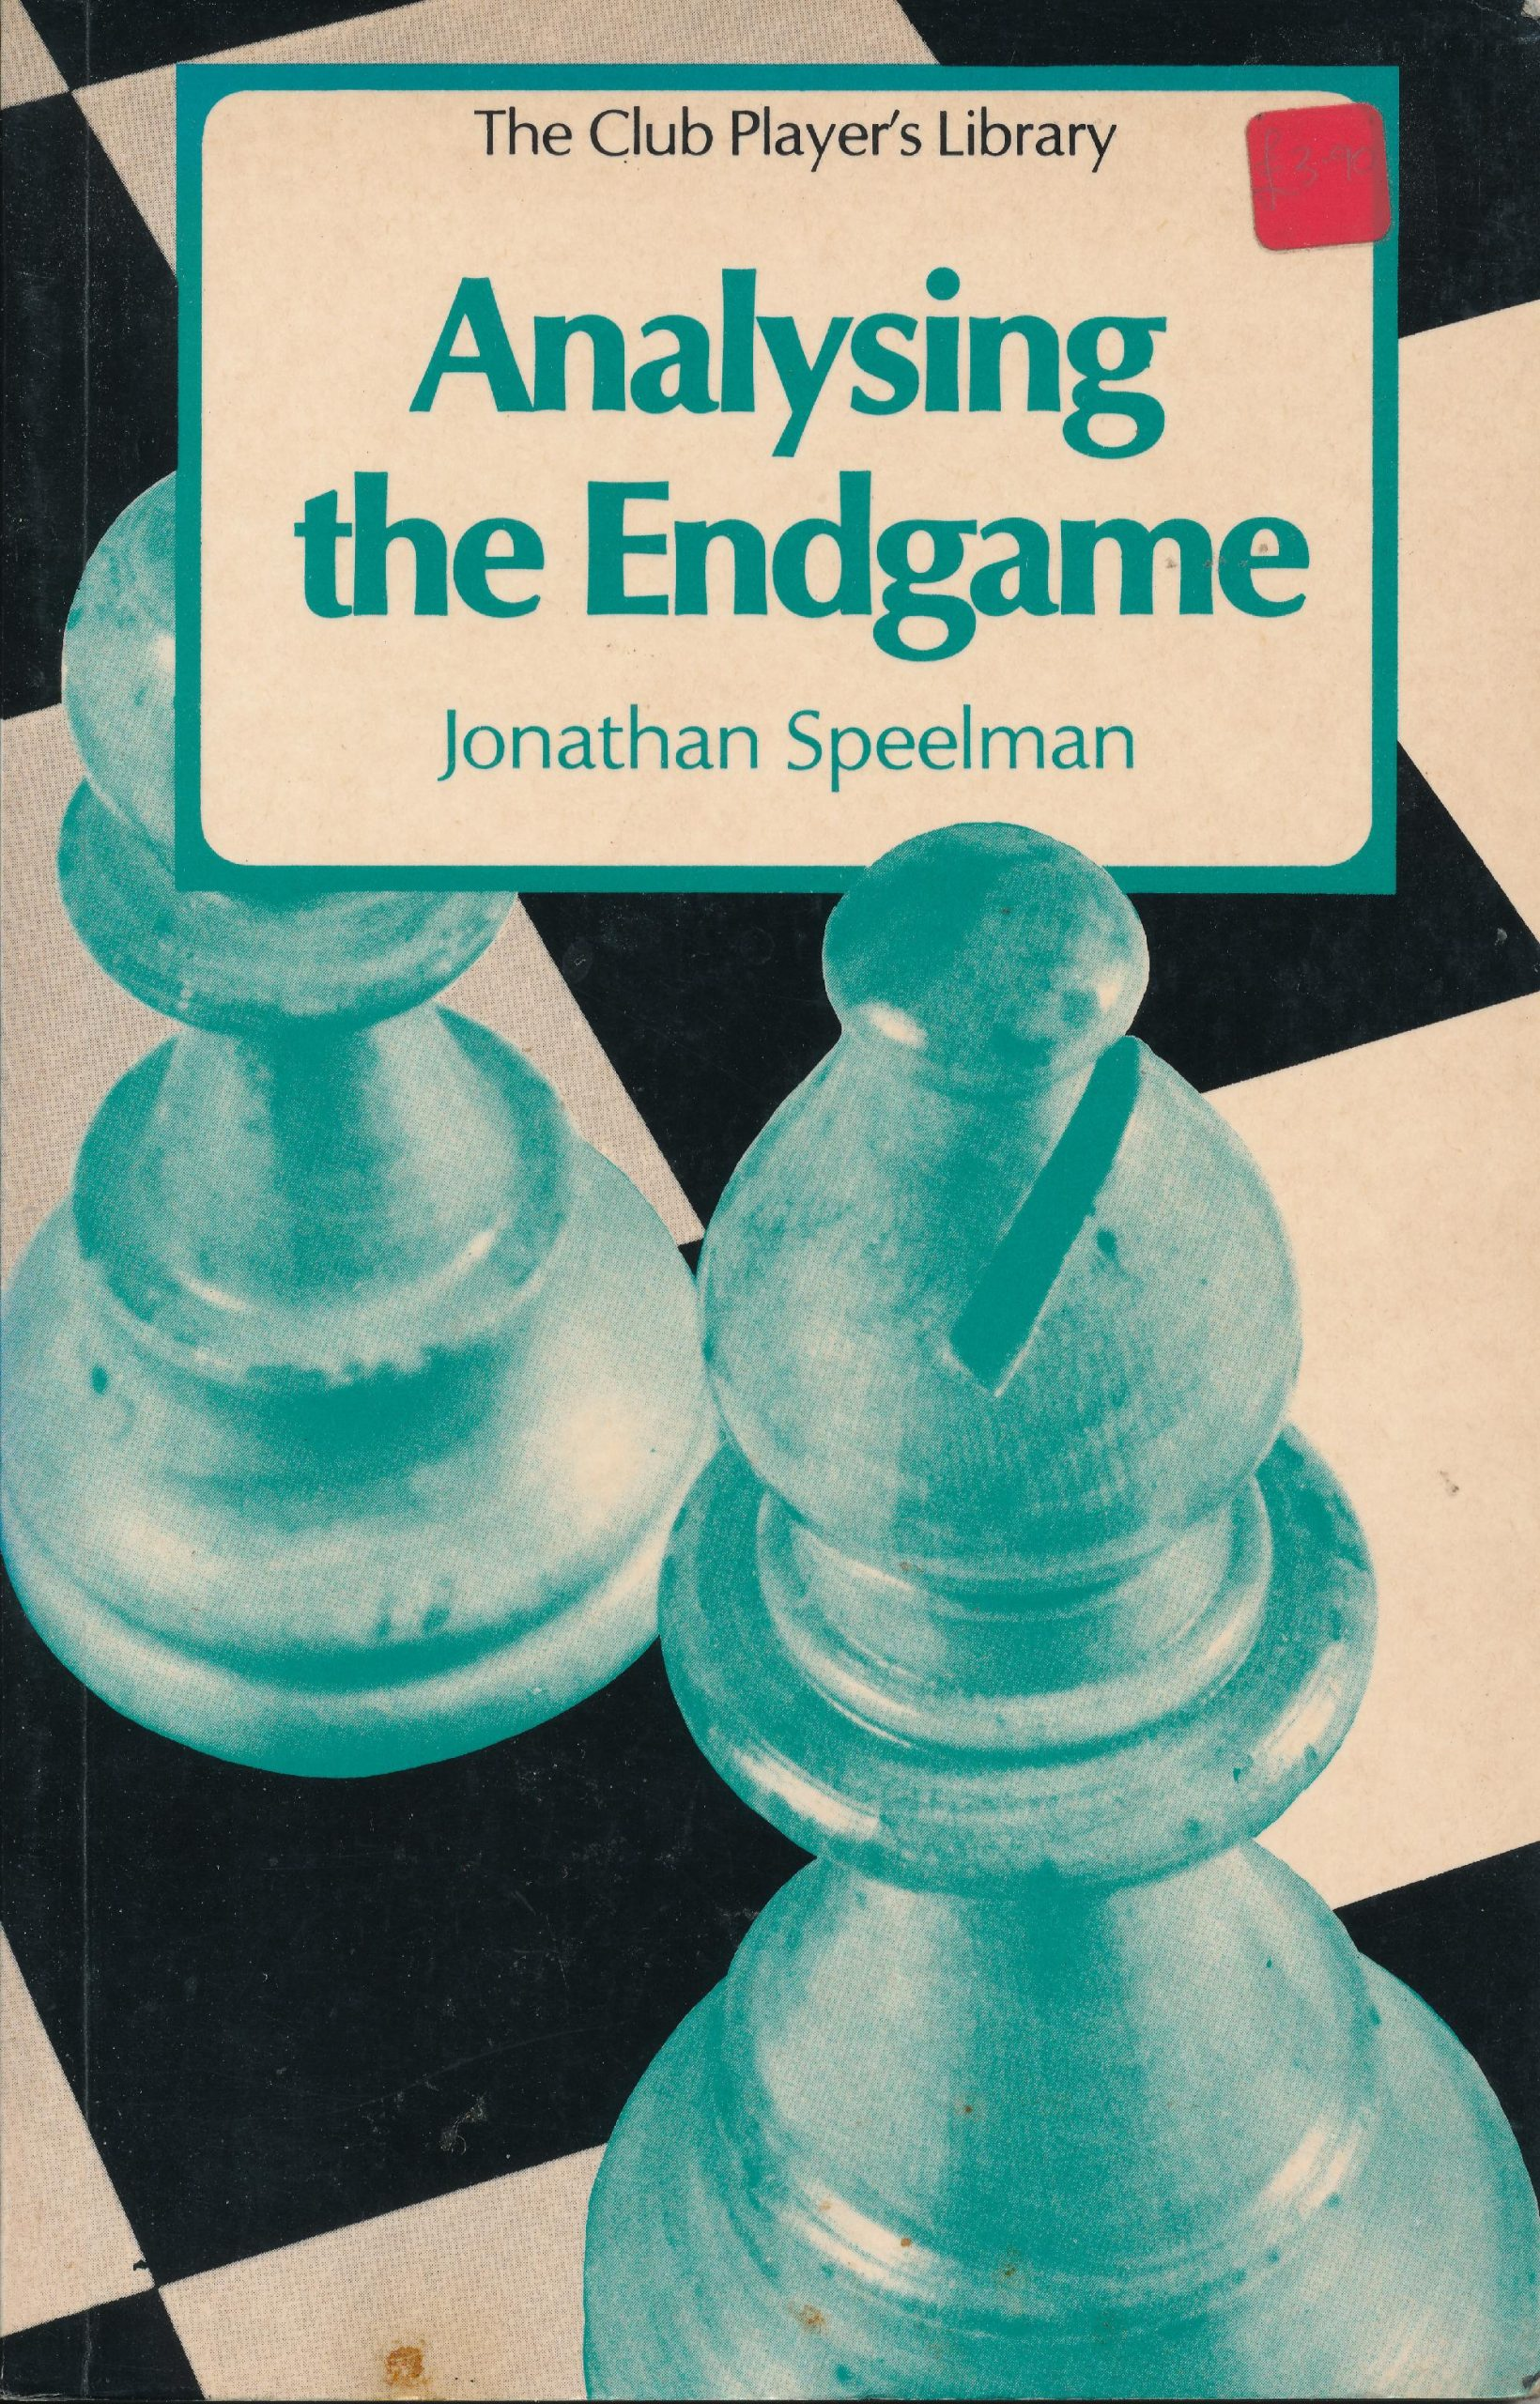 Speelman, Jonathan (1981). Analysing the Endgame. Batsford (London, England). 142 pages. ISBN 978-0-7134-1909-2.